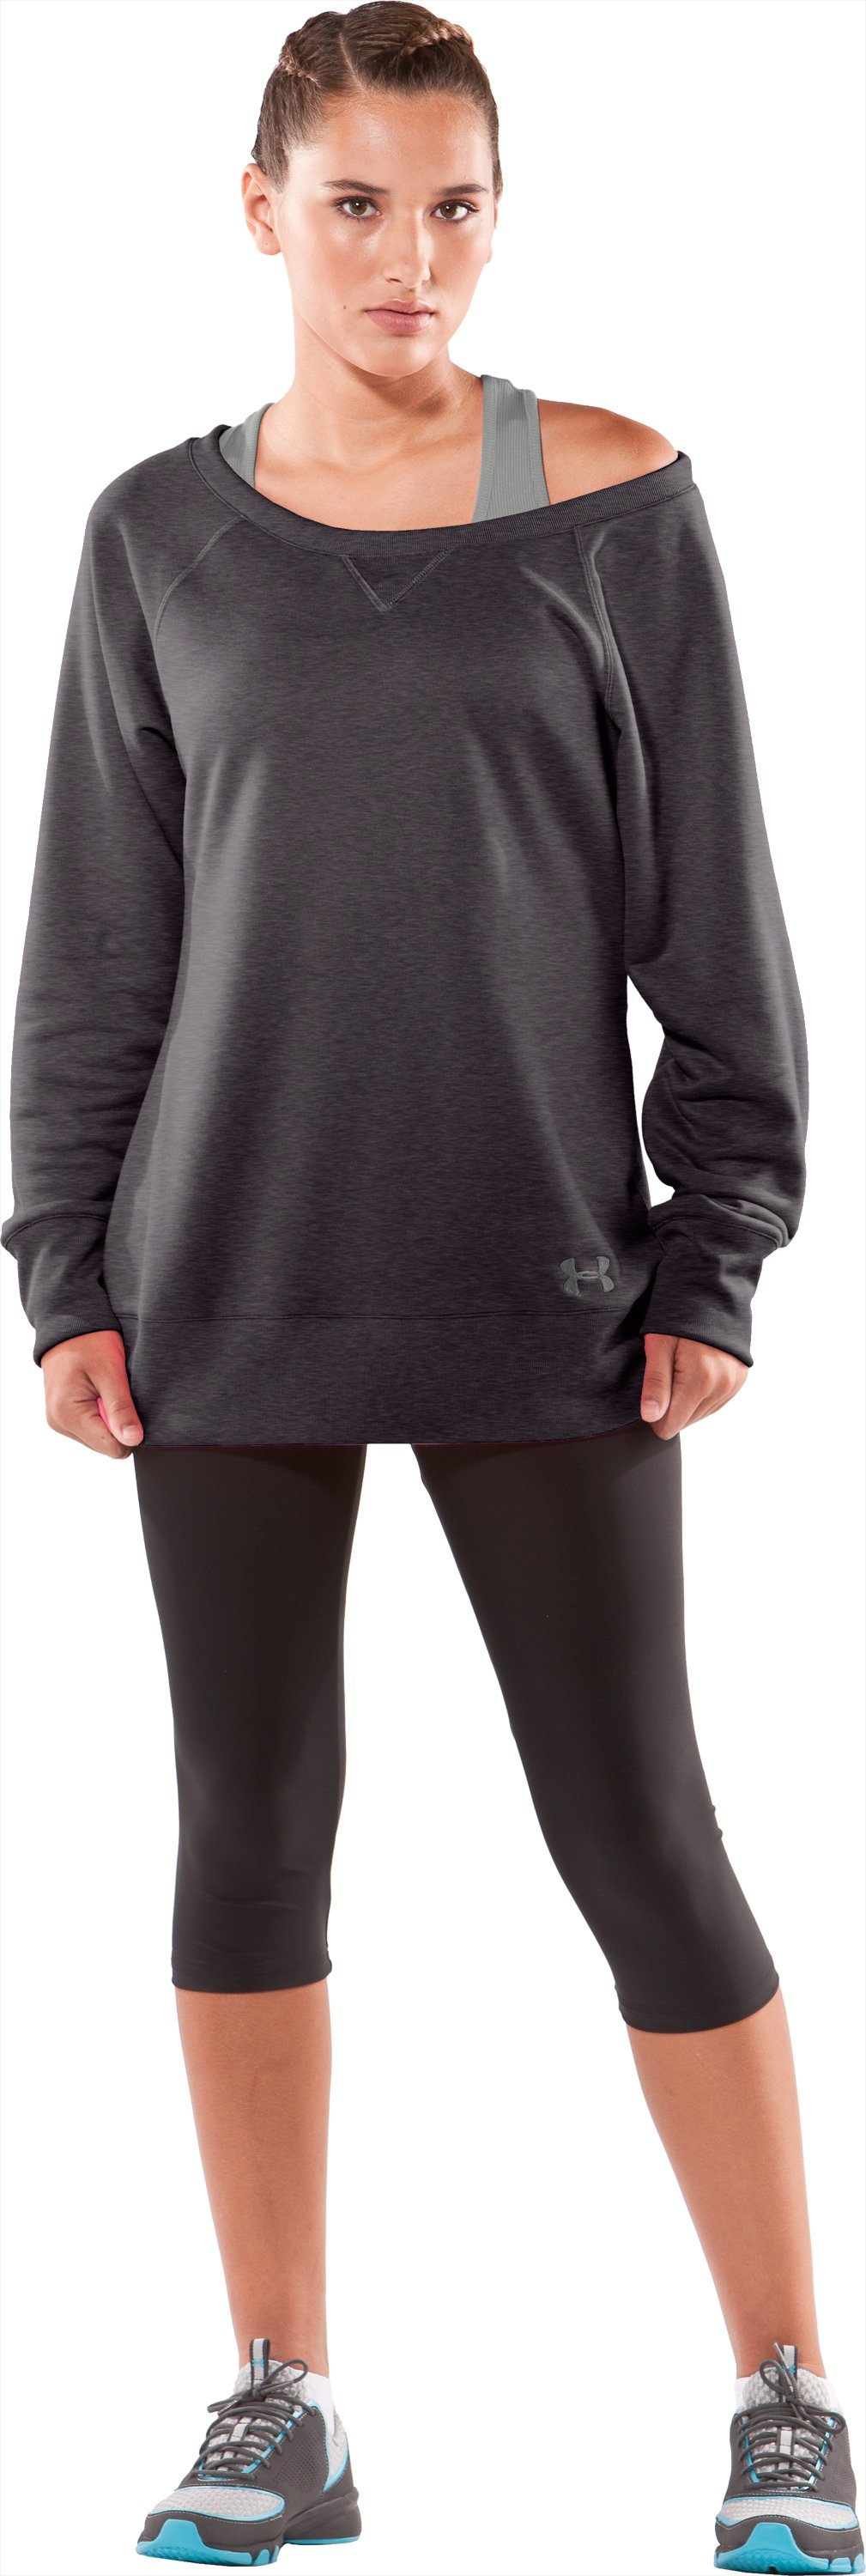 Women's Varsity Sweatshirt, Carbon Heather, Front